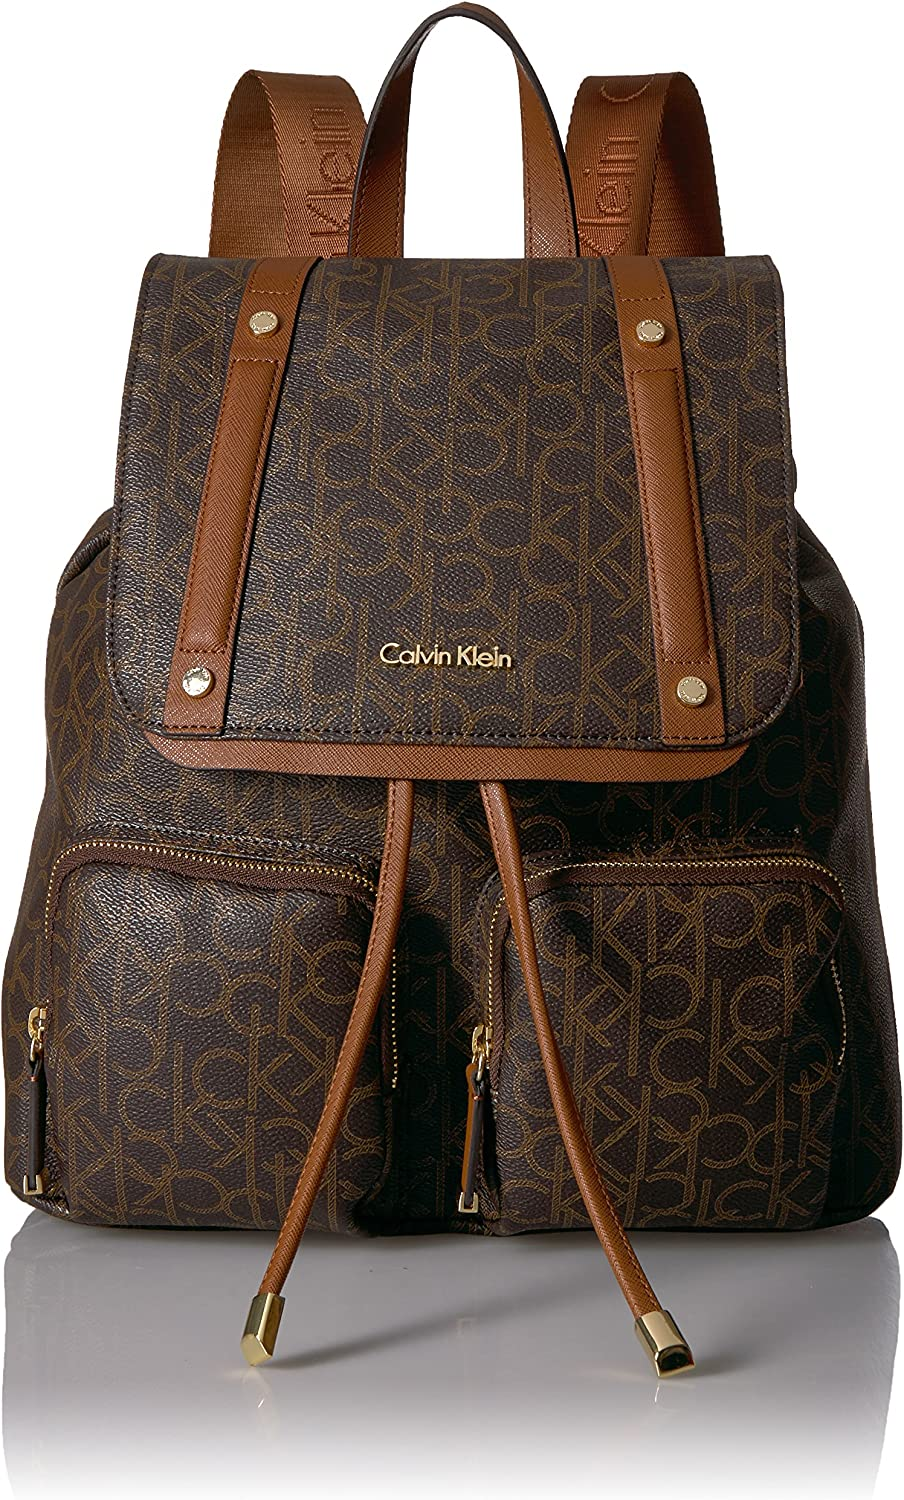 Calvin Klein Teodora Monogram Flap Backpack